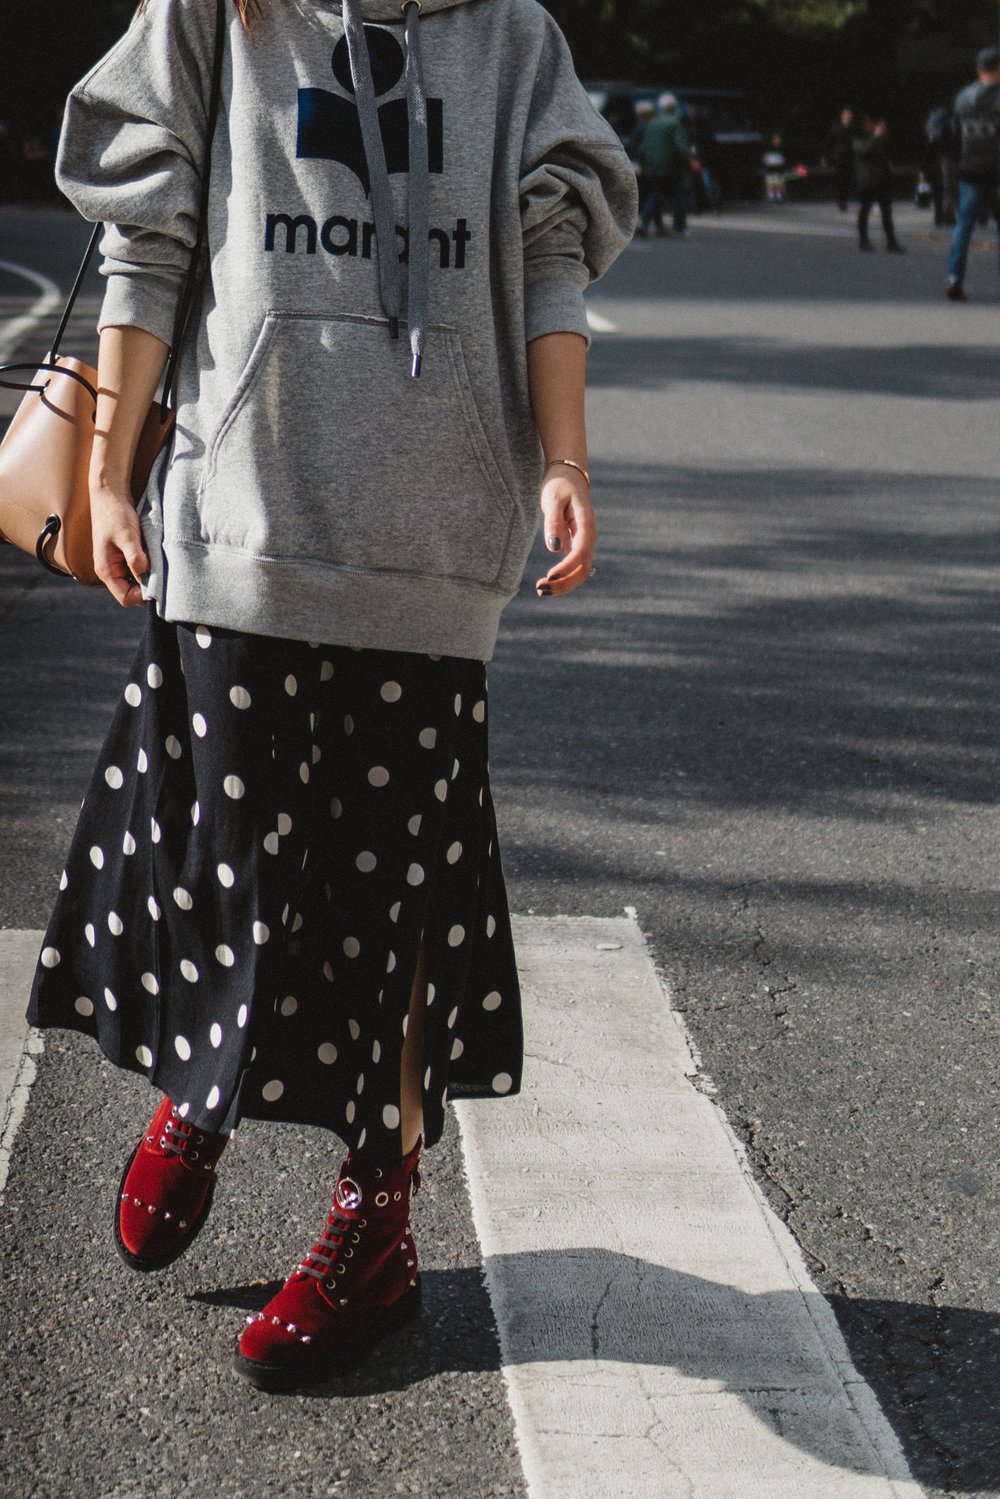 Isabel Marant Hoodie, Reformation Skirt, Fendi Boots, Kozha Numbers Bag